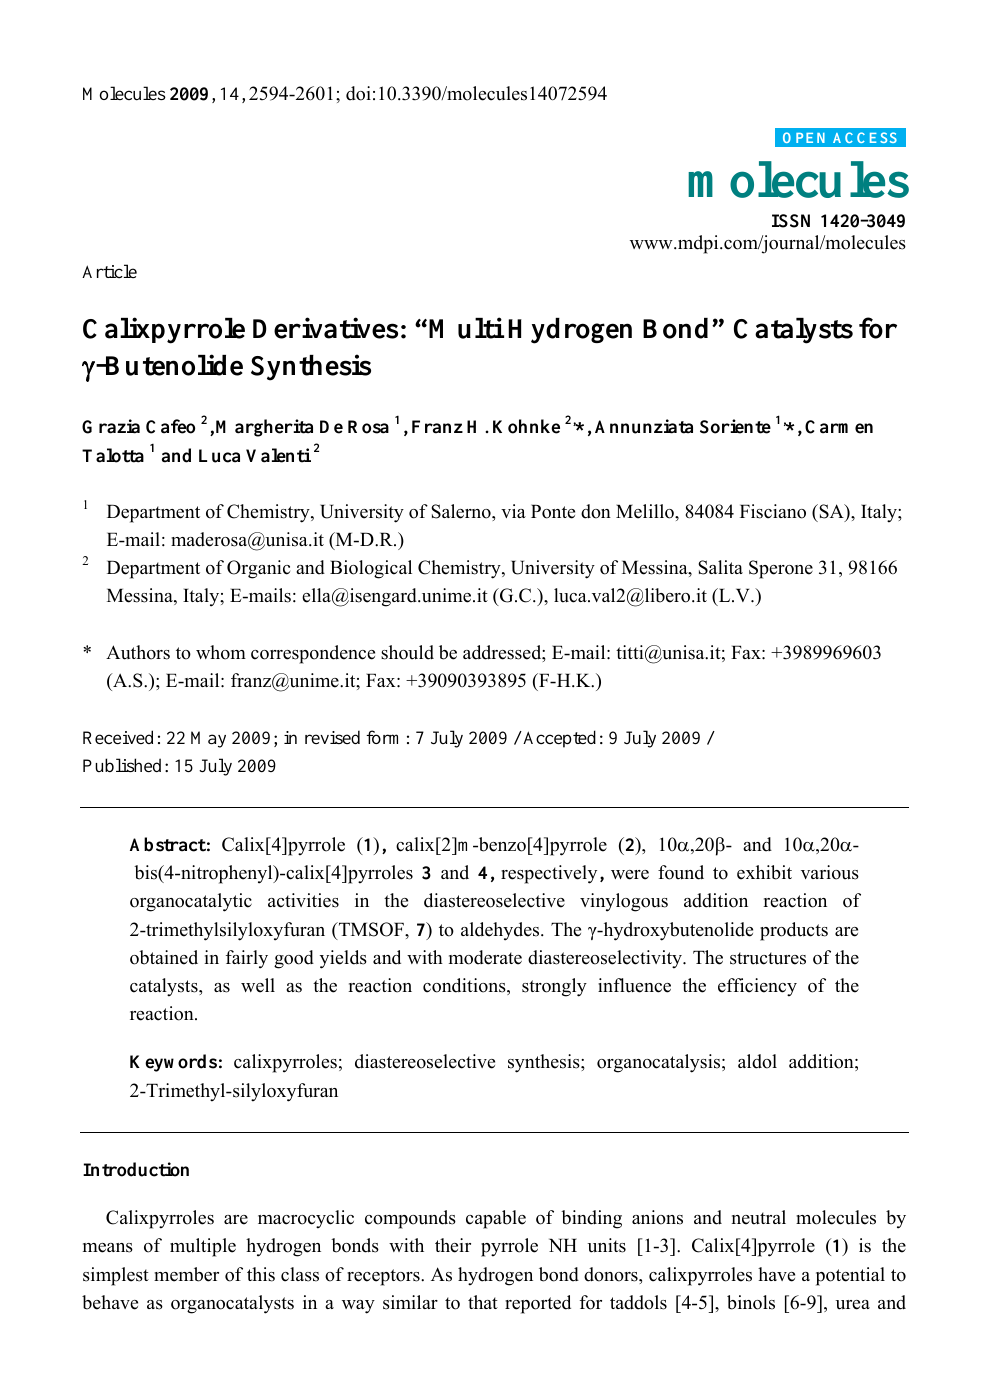 "Calixpyrrole Derivatives: ""Multi Hydrogen Bond"" Catalysts for γ"